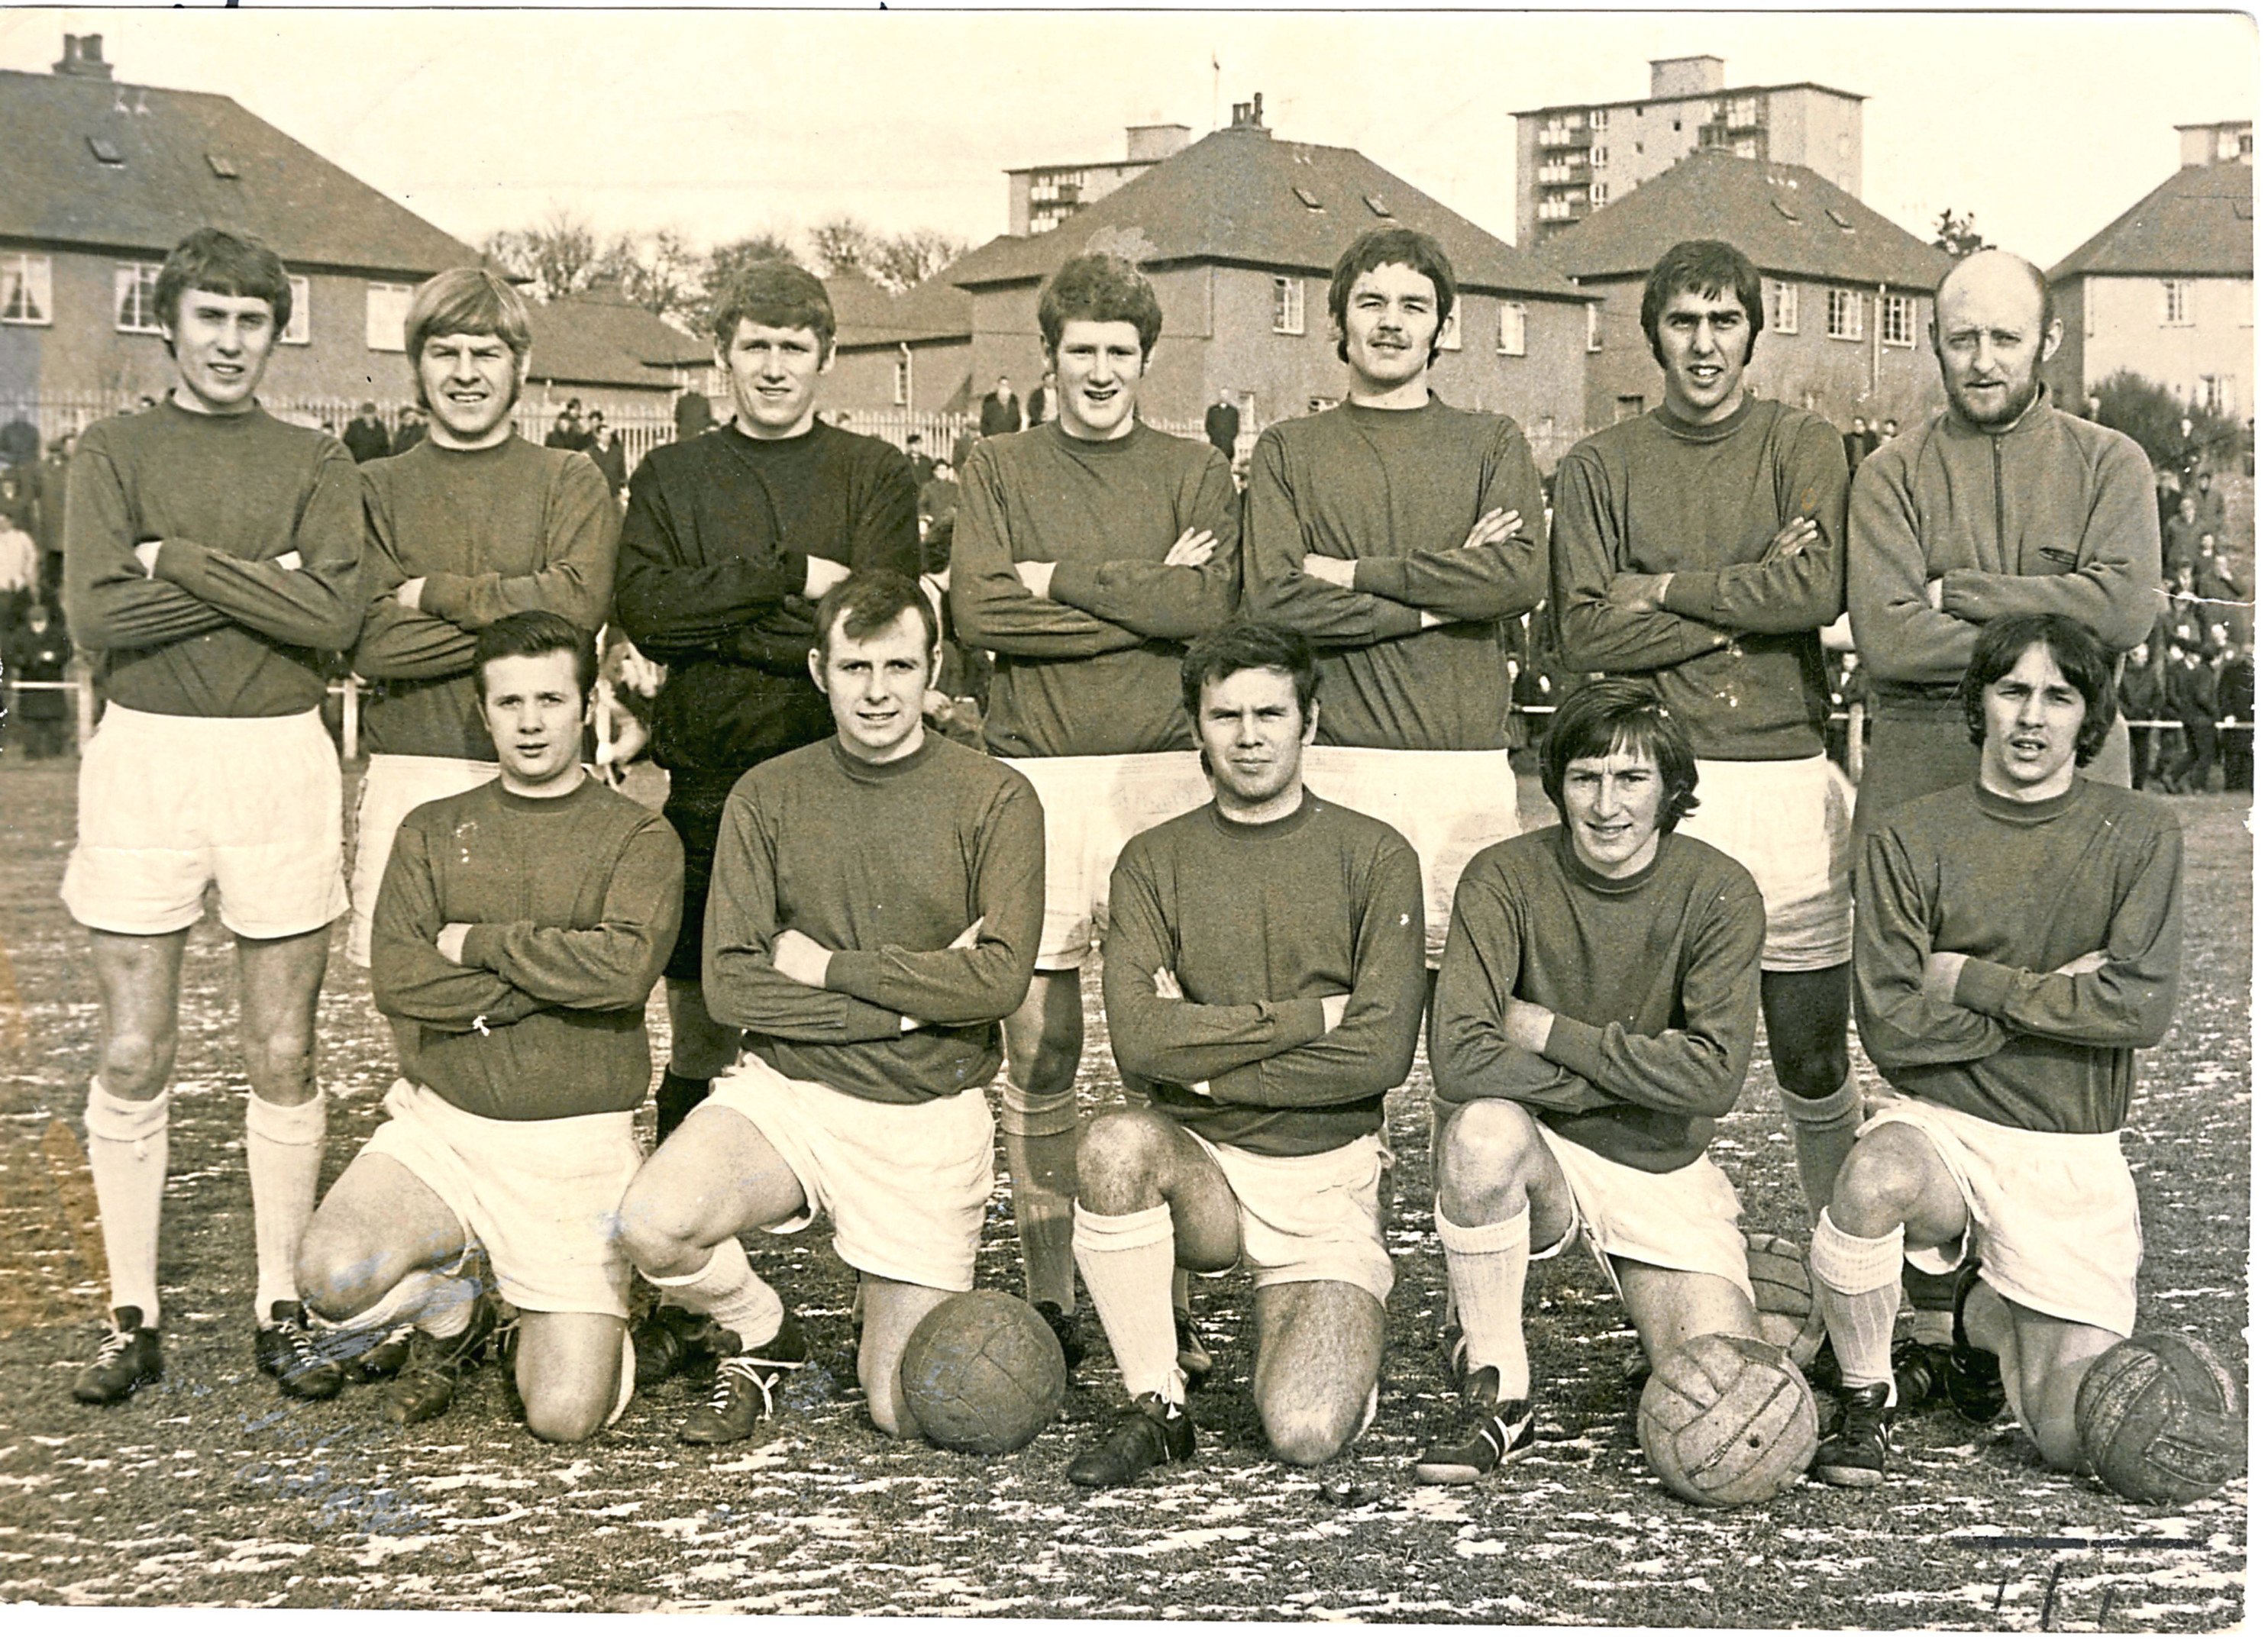 Jimmy Gowans is pictured front row, right.